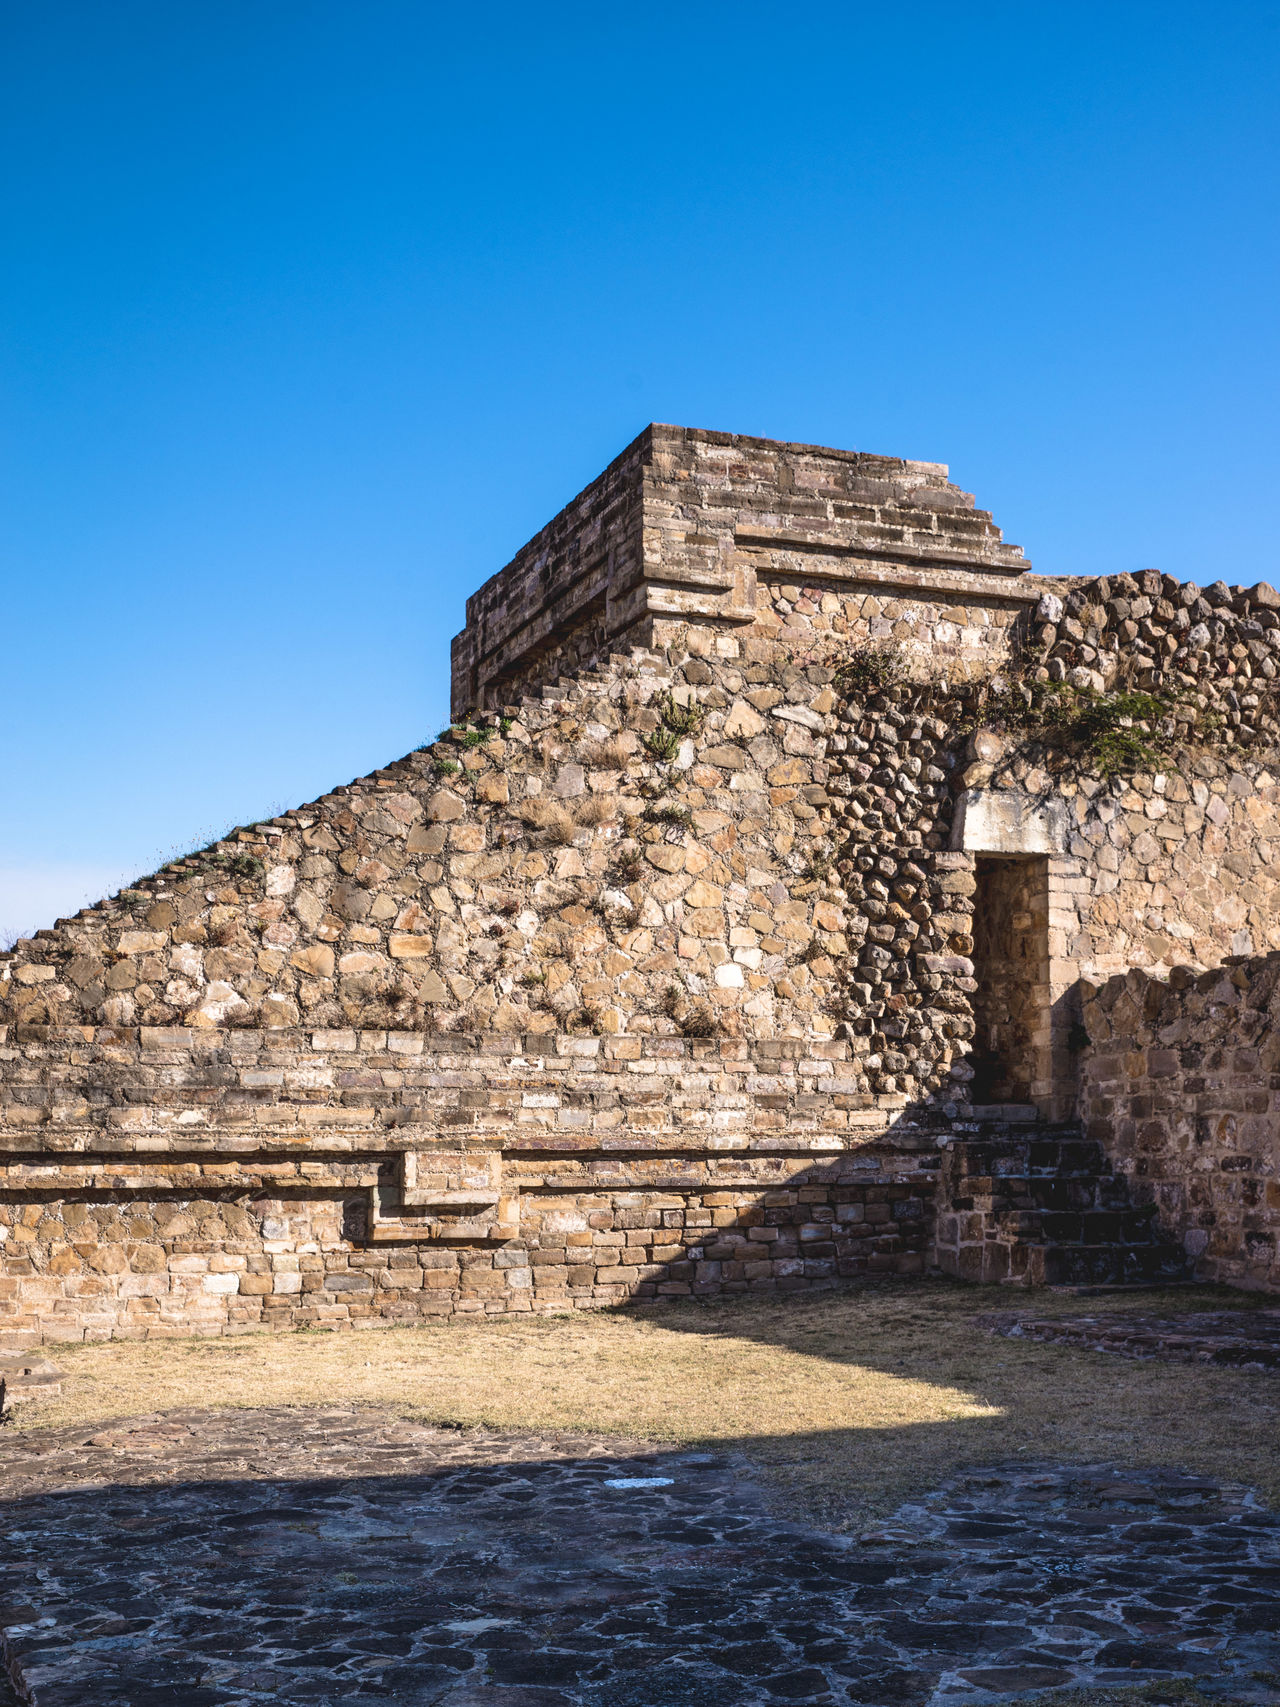 Ancient Ancient Ancient Architecture Ancient Civilization Ancient Ruins Archeology Architecture Architecture Art Cosmos Culture History Landscape_photography Mexico Mexico_maravilloso Monte Alban Nature Old Ruin Outdoors Place Of Worship Prehispanic Pyramid Stone Material Travel Travel Destinations Neighborhood Map